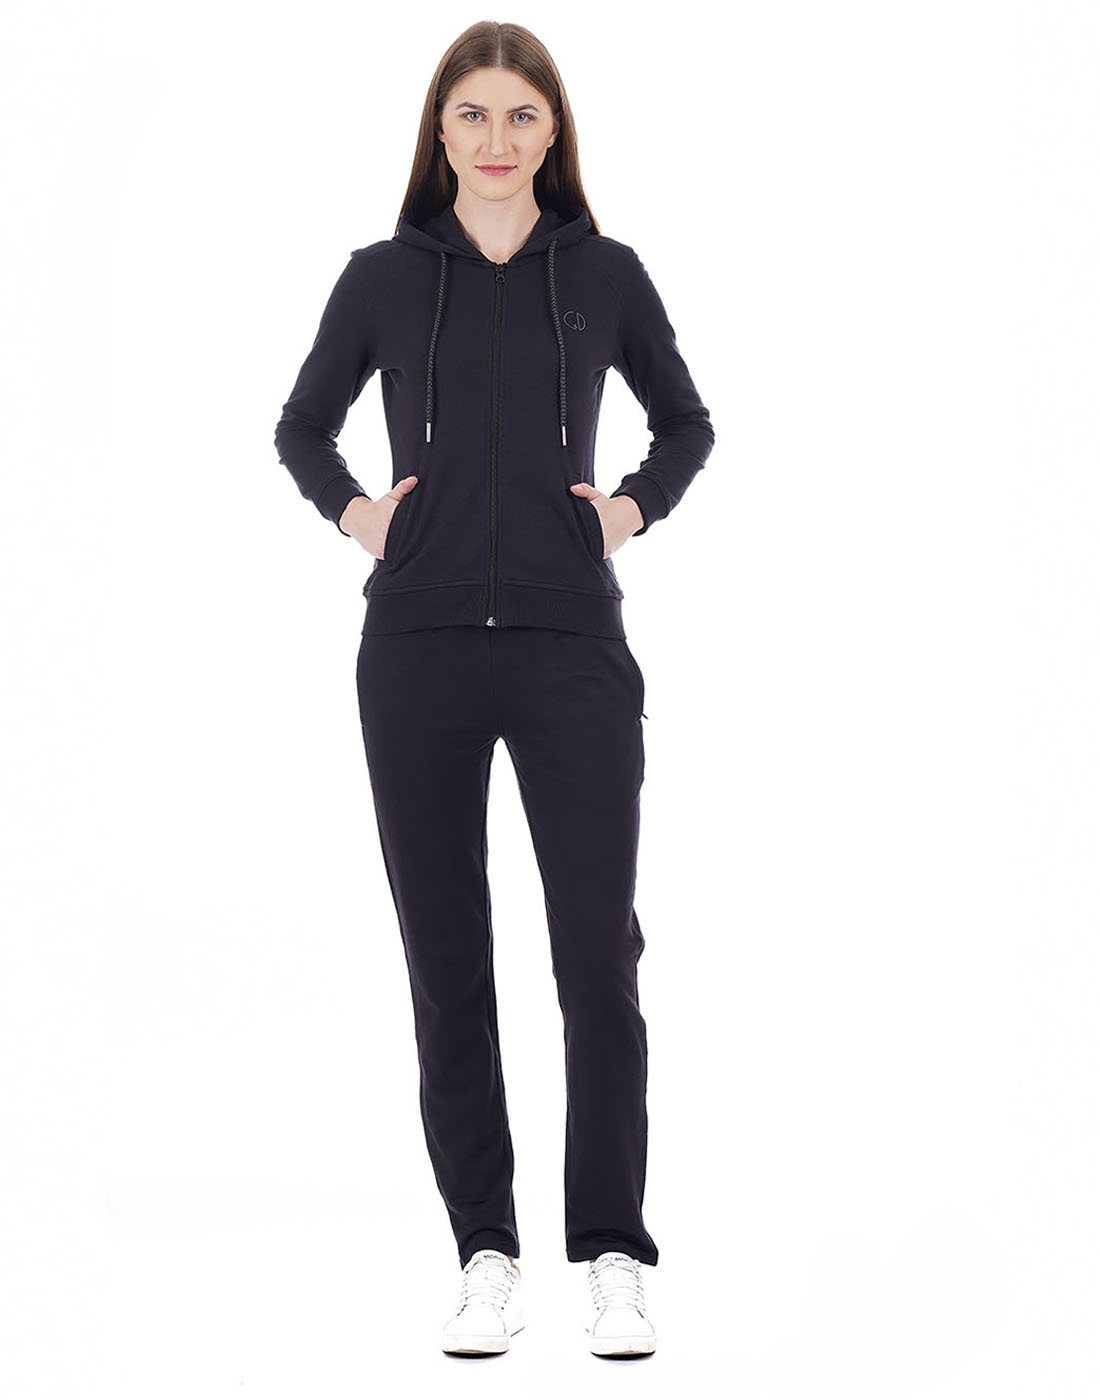 Cloak & Decker Women Black Tracksuit